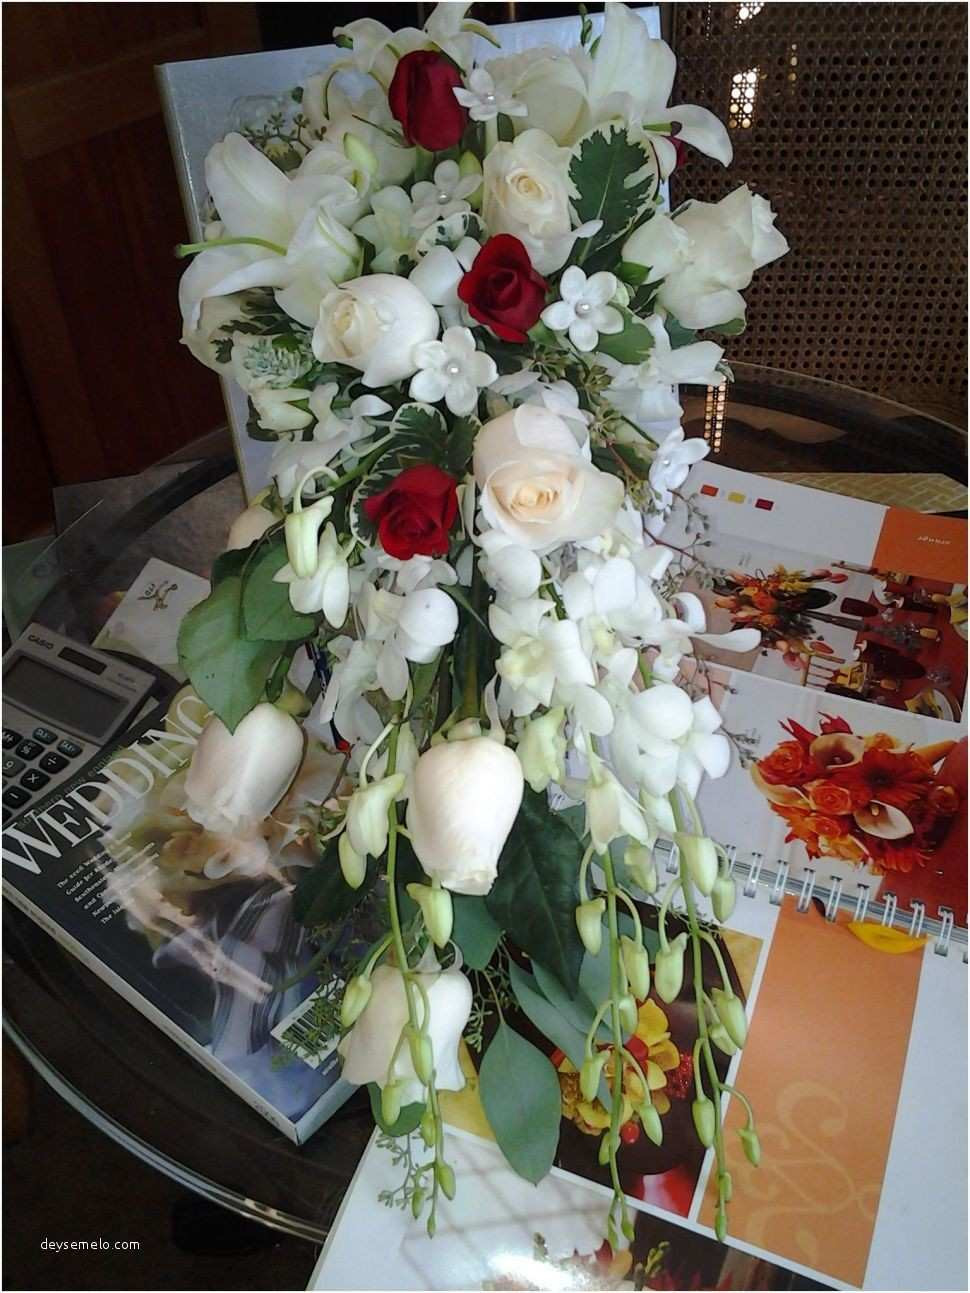 flowers in vases artificial ones of amazing artificial flower bouquet and fake flowers fascinating h pertaining to amazing artificial flower bouquet and artificial flower bouquet archaicawful a beautiful cascade bouquet